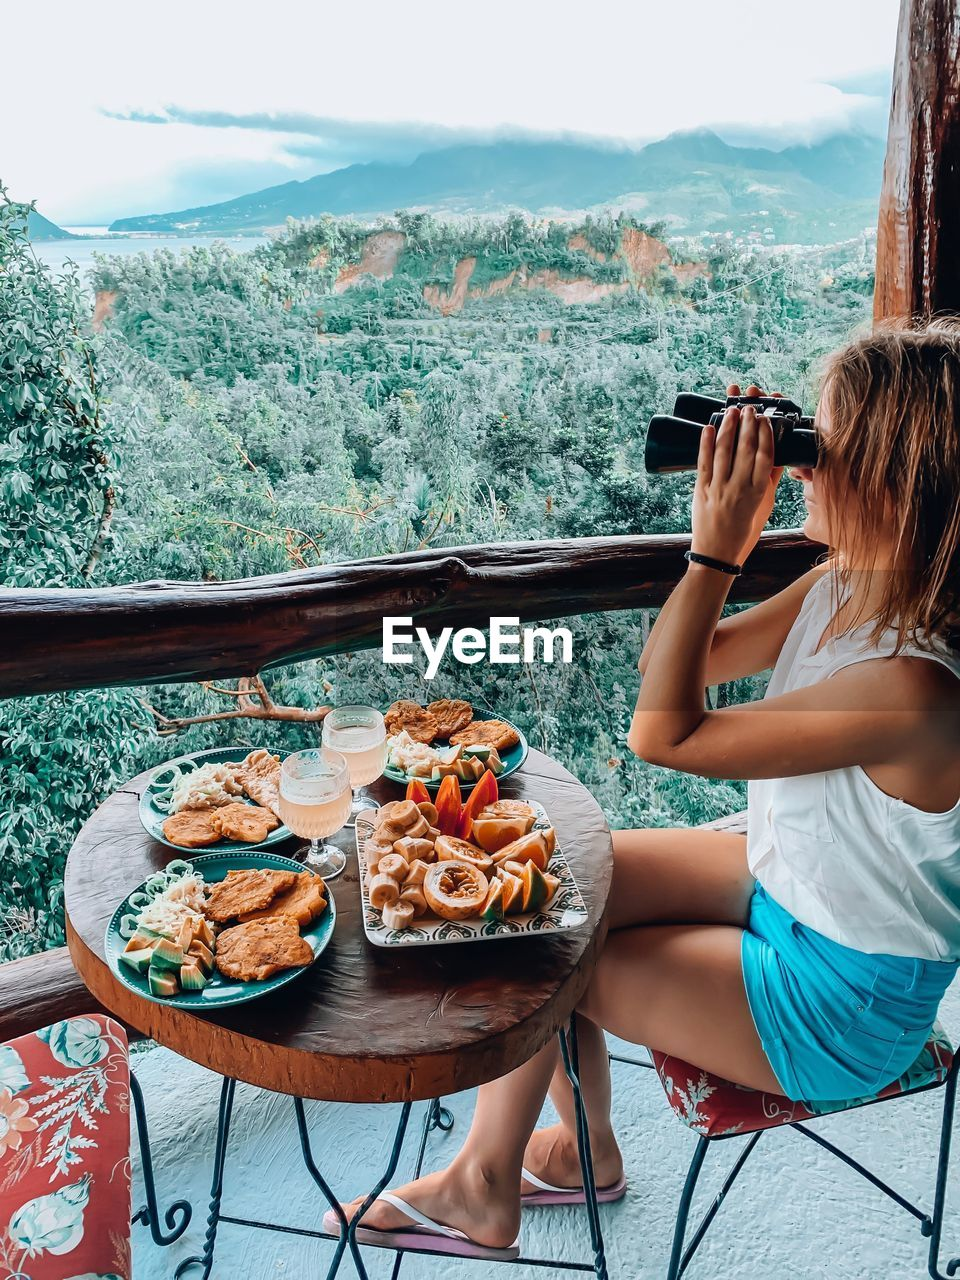 Woman using binoculars while sitting by food on table